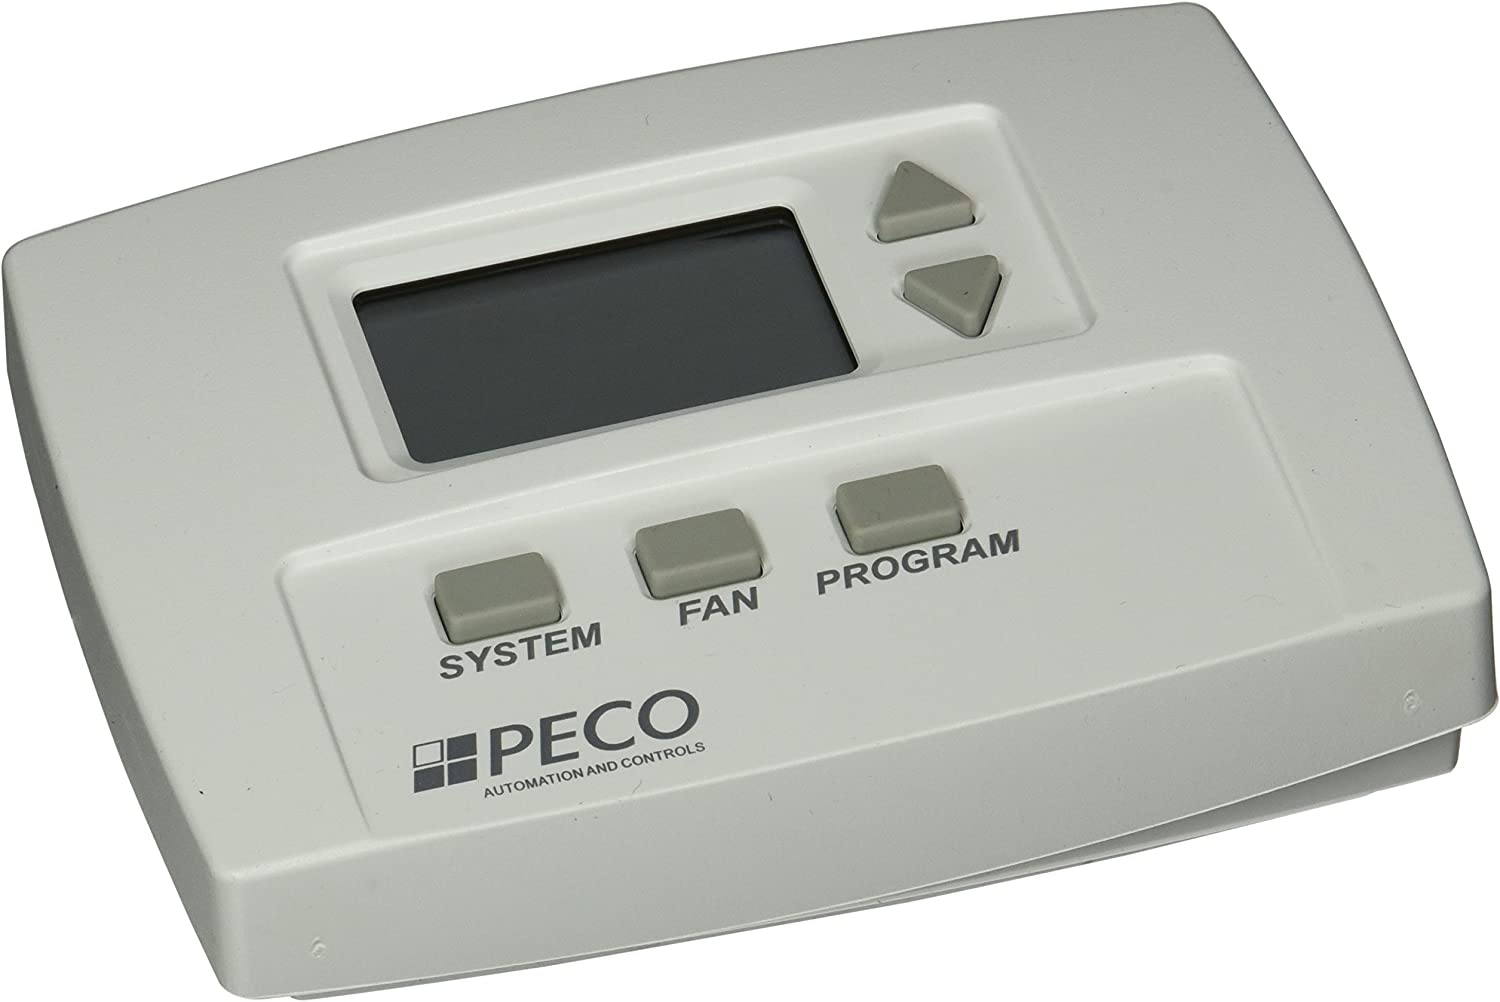 Peco TA180-001 3 Speed Fan Programmable Thermostat, 1H/1C, Line Voltage, White